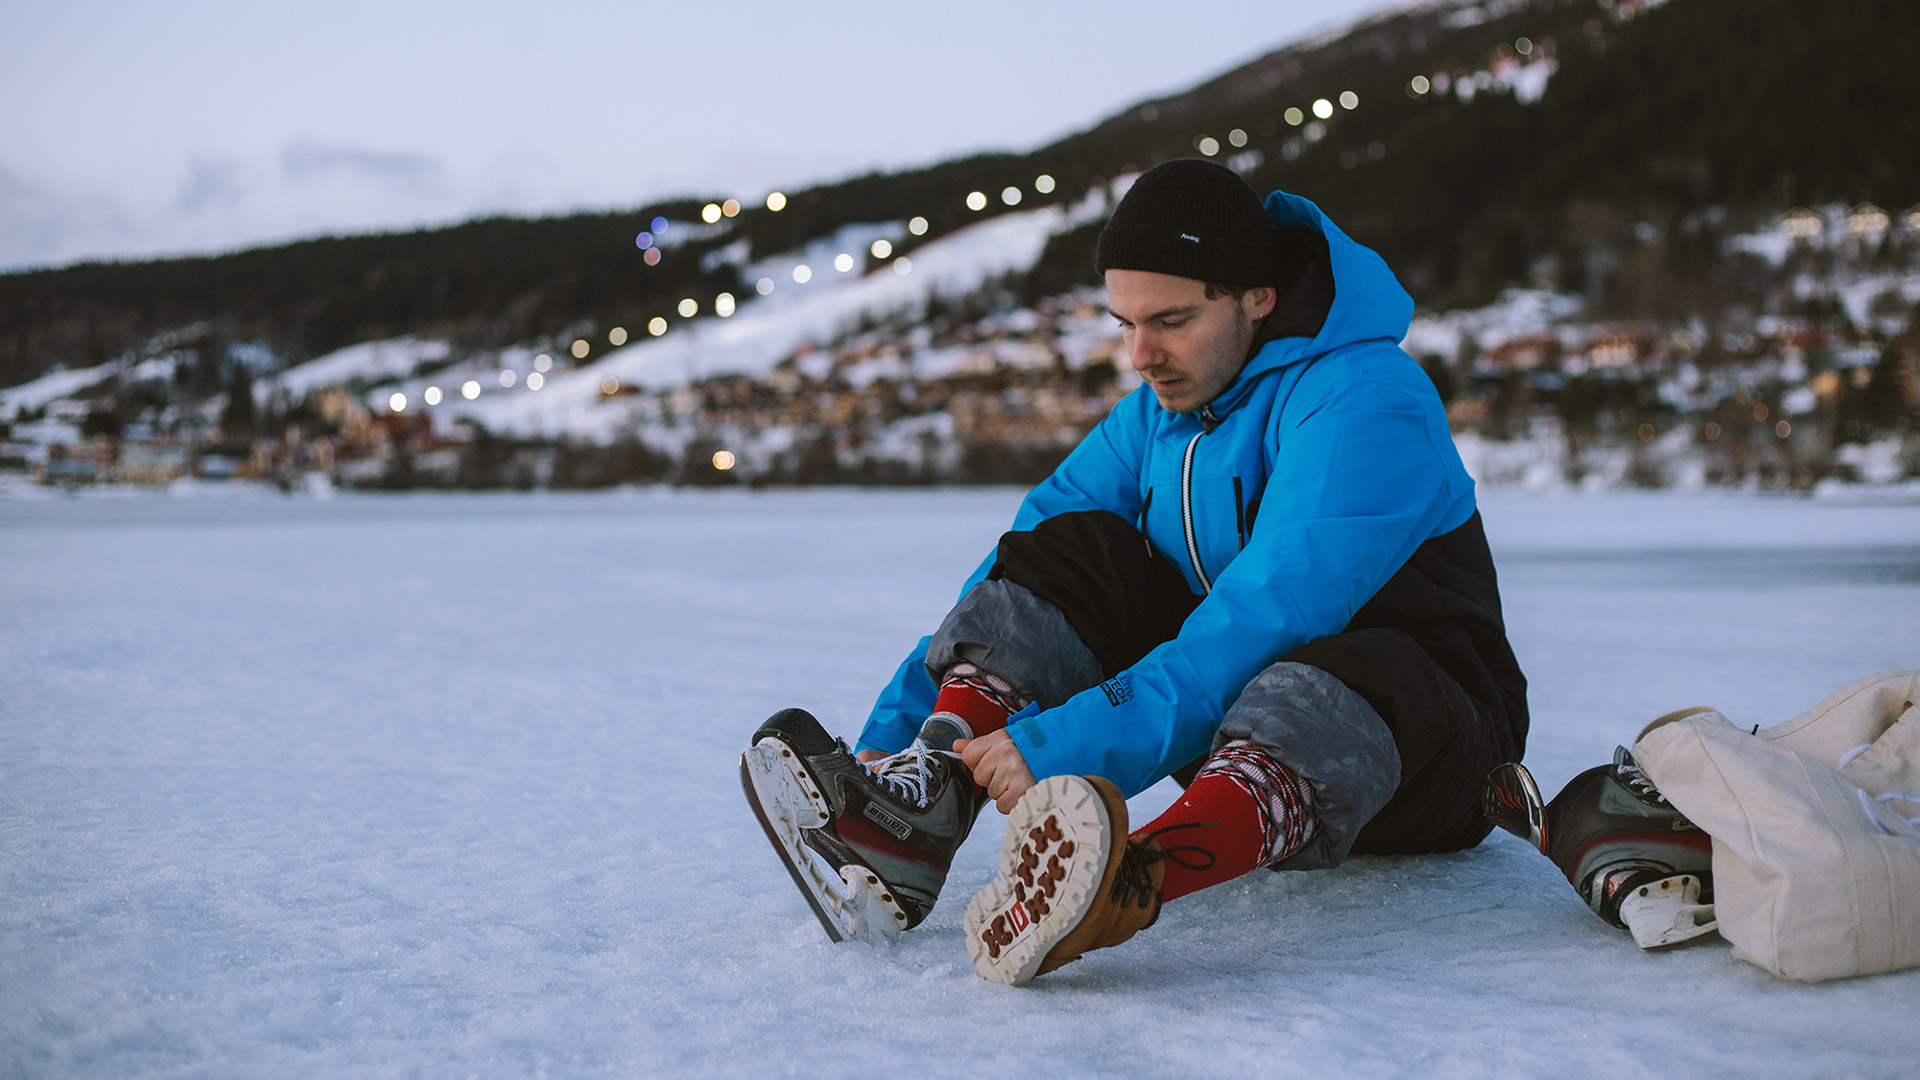 Extra_Ice_Skating_LaceUp